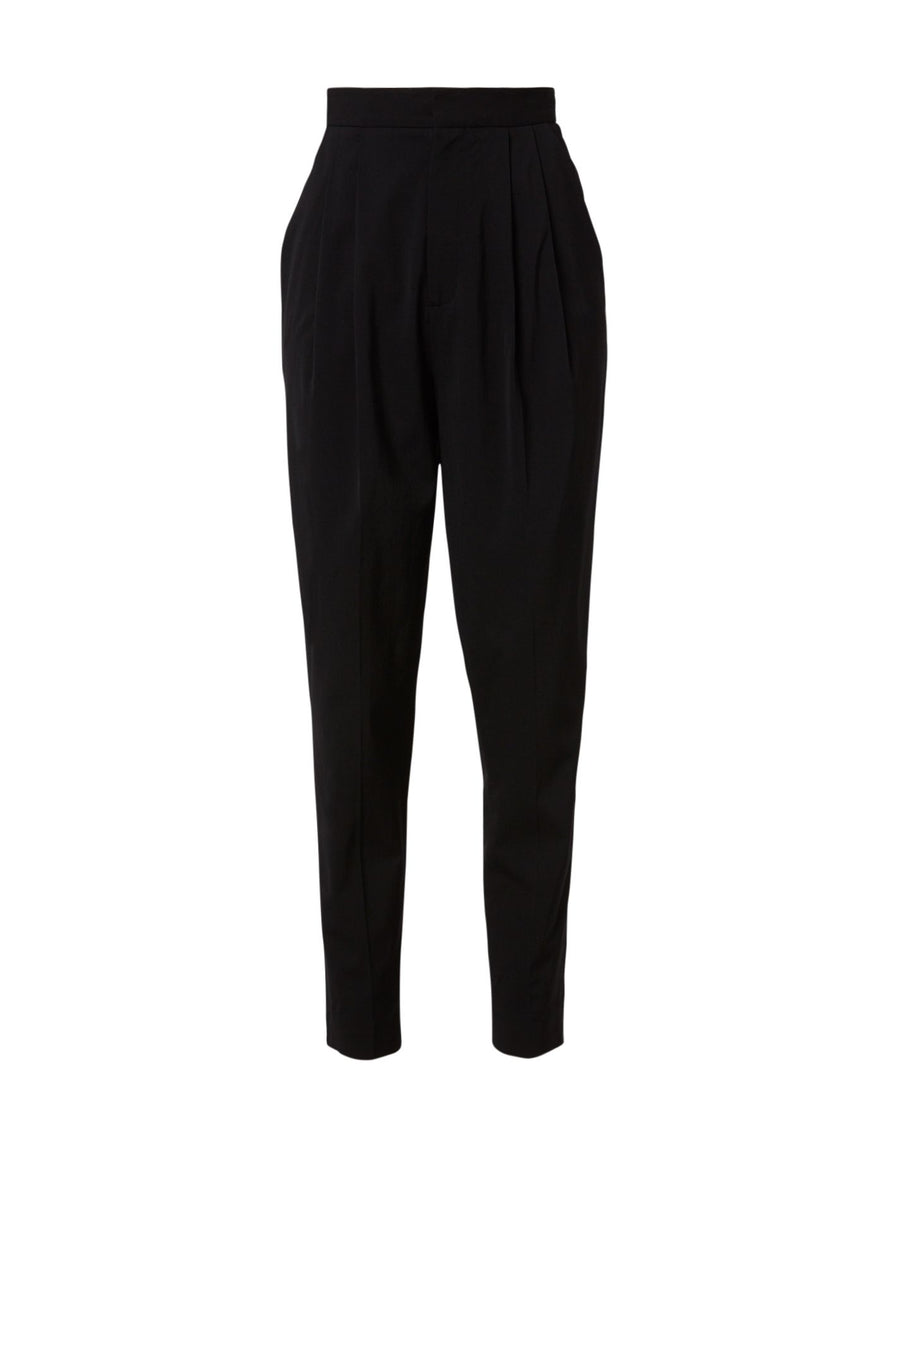 Tailored Pleat Trouser, Front Pockets, Ankle Length, Color Black